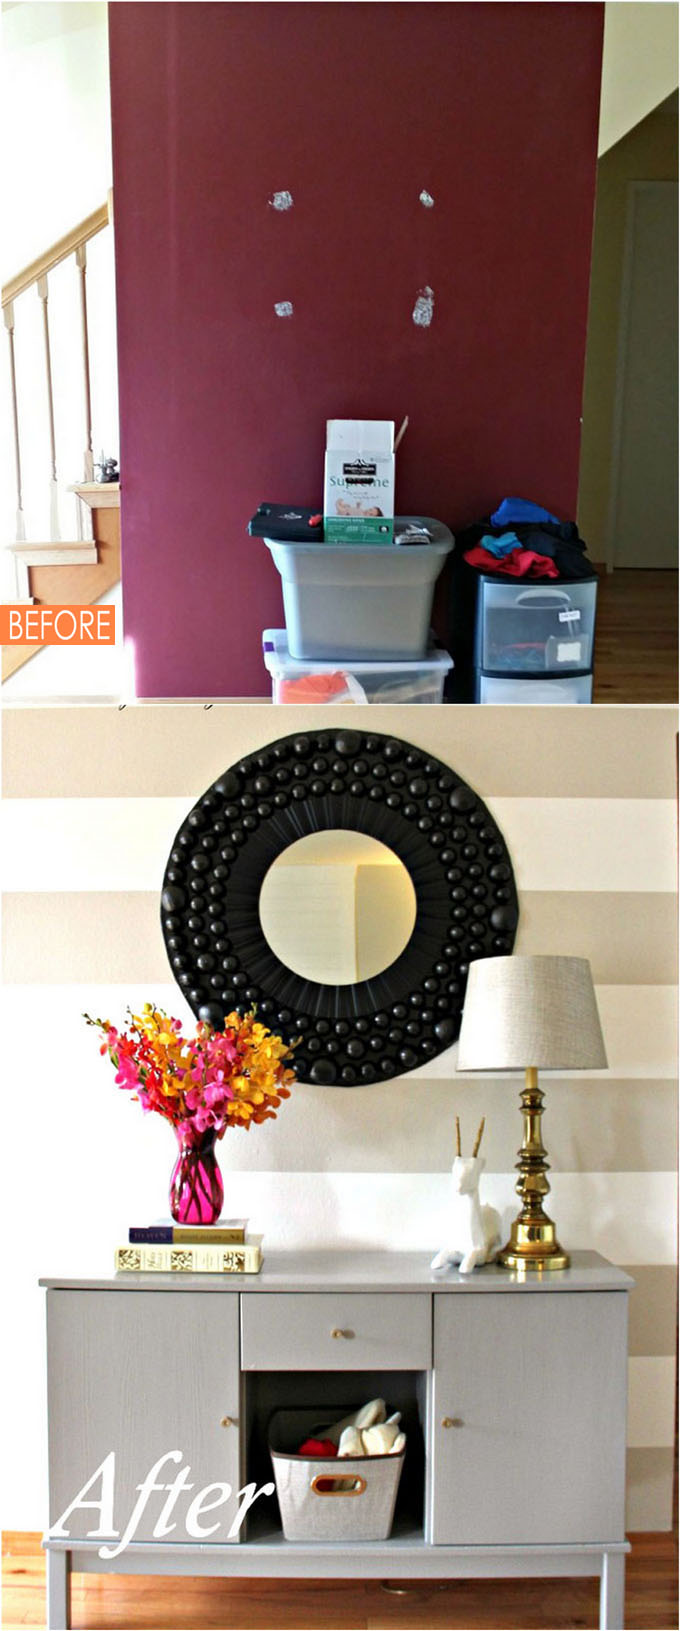 20-entryway-before-after-apieceofrainbowblog-4